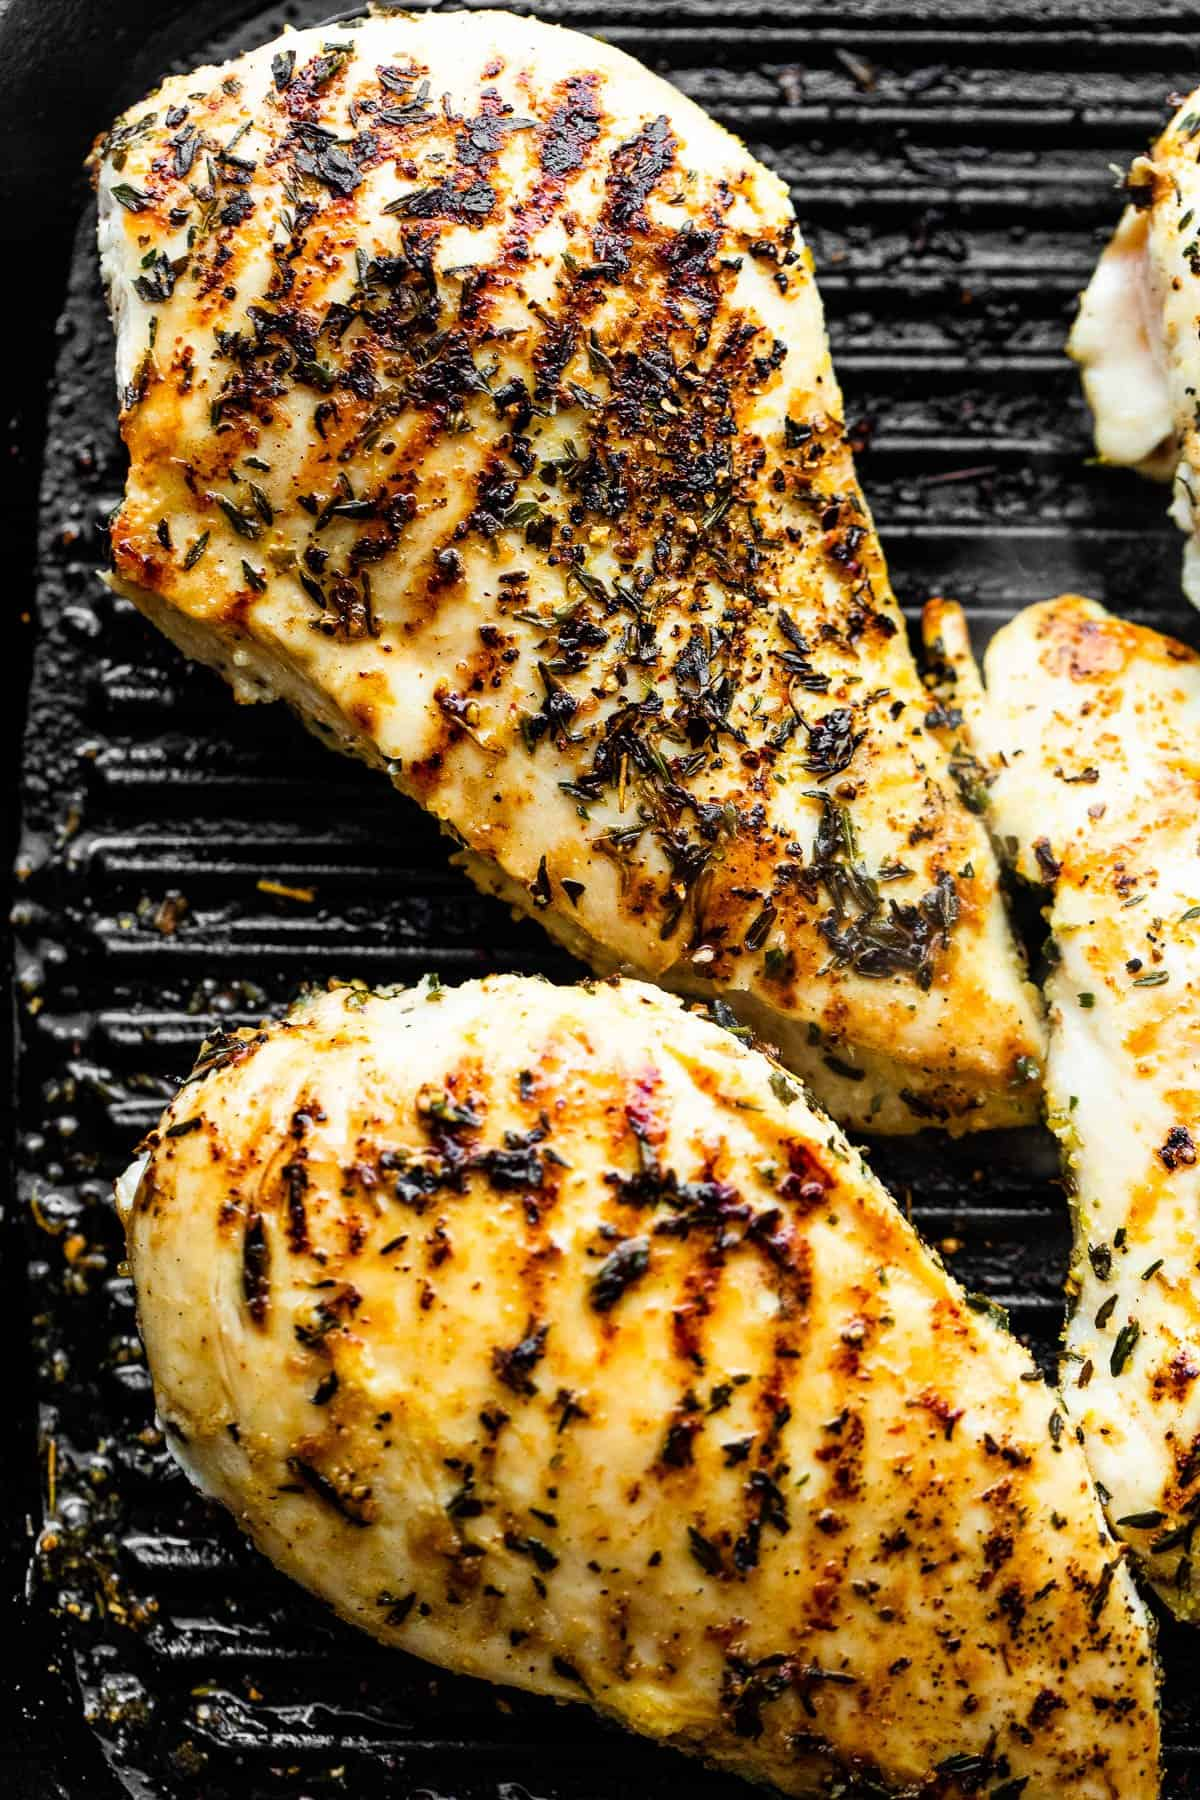 grilling four chicken breasts